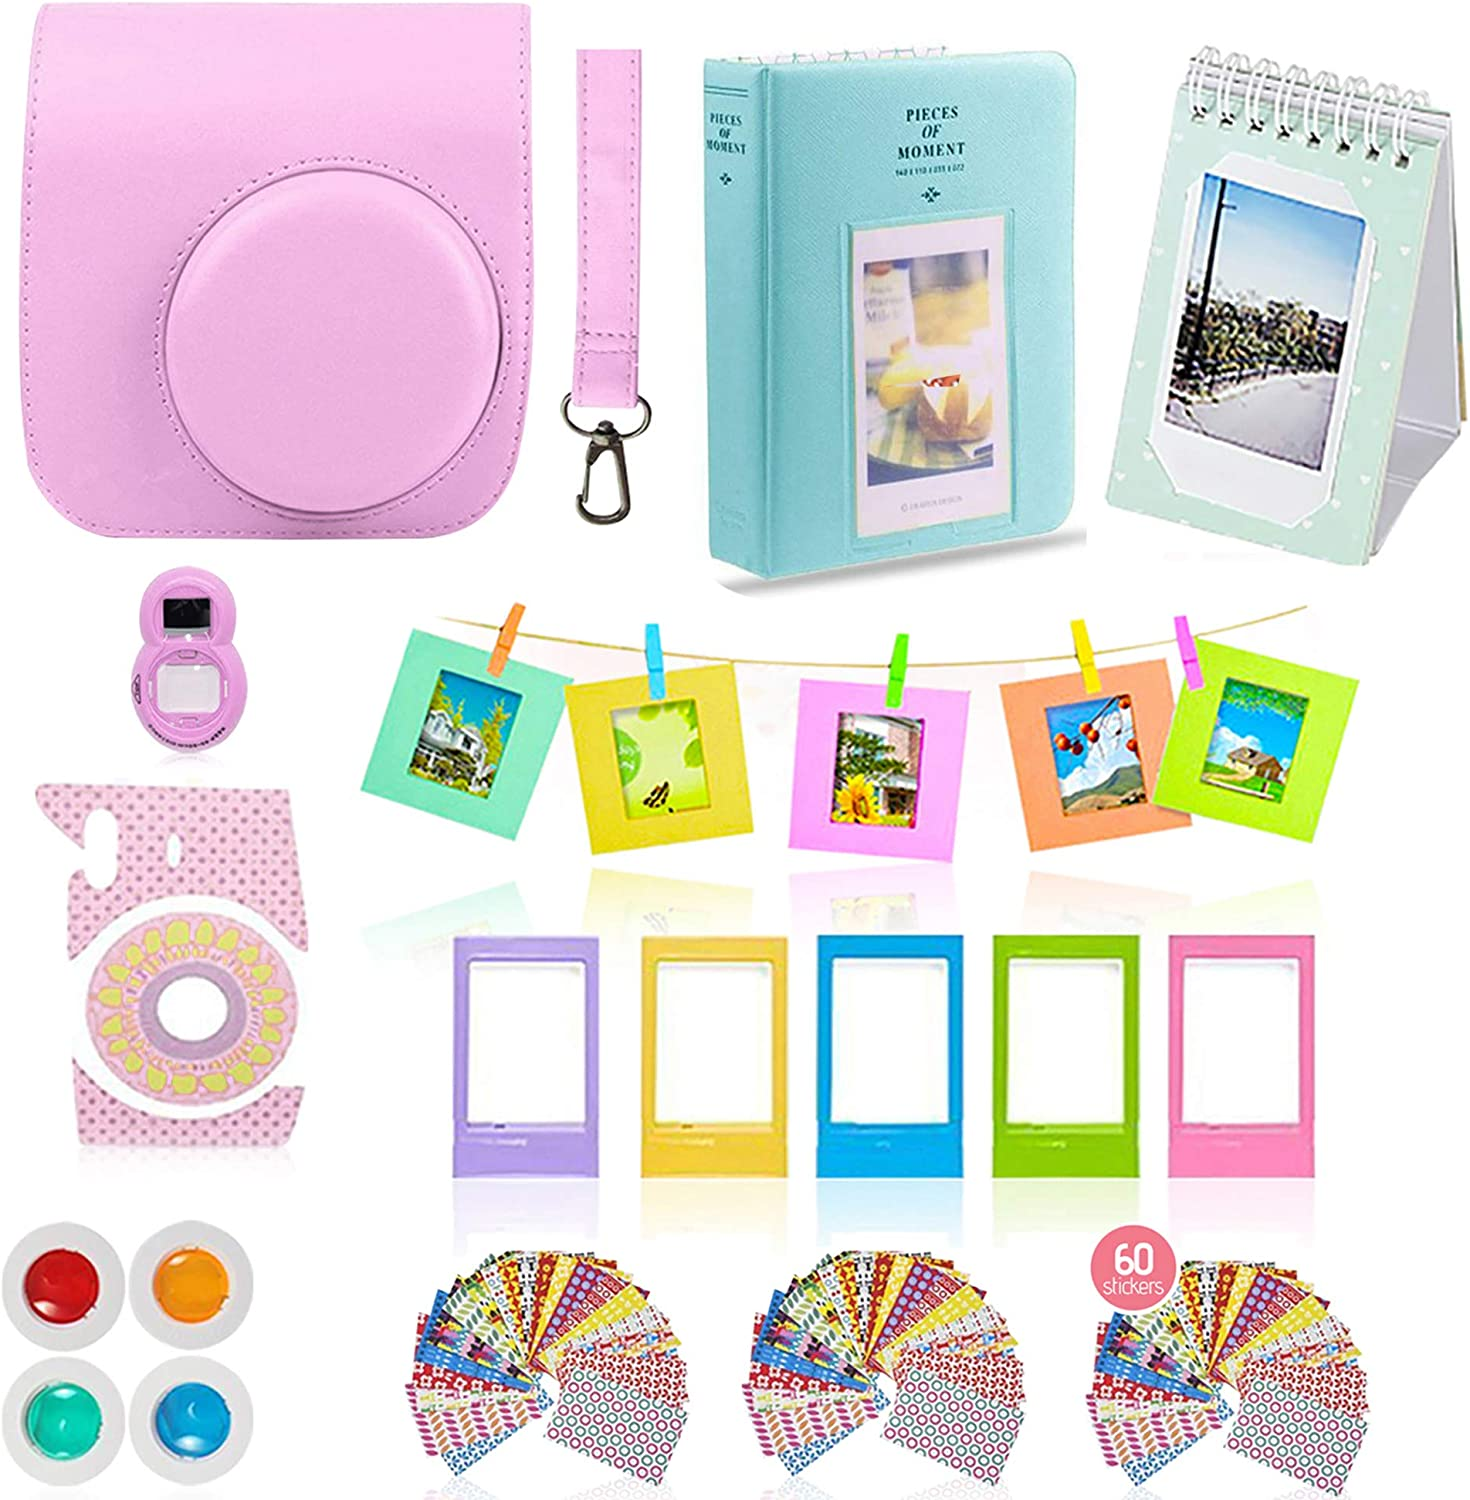 Gift Set Selfie Lens 2 Albums 60 Stickers Creative Frames 14 PC Kit Includes: Yellow Instax Mini Case Color Filters Hanging Frames Fujifilm Instax Mini 9 Camera Accessories Bundle Strap